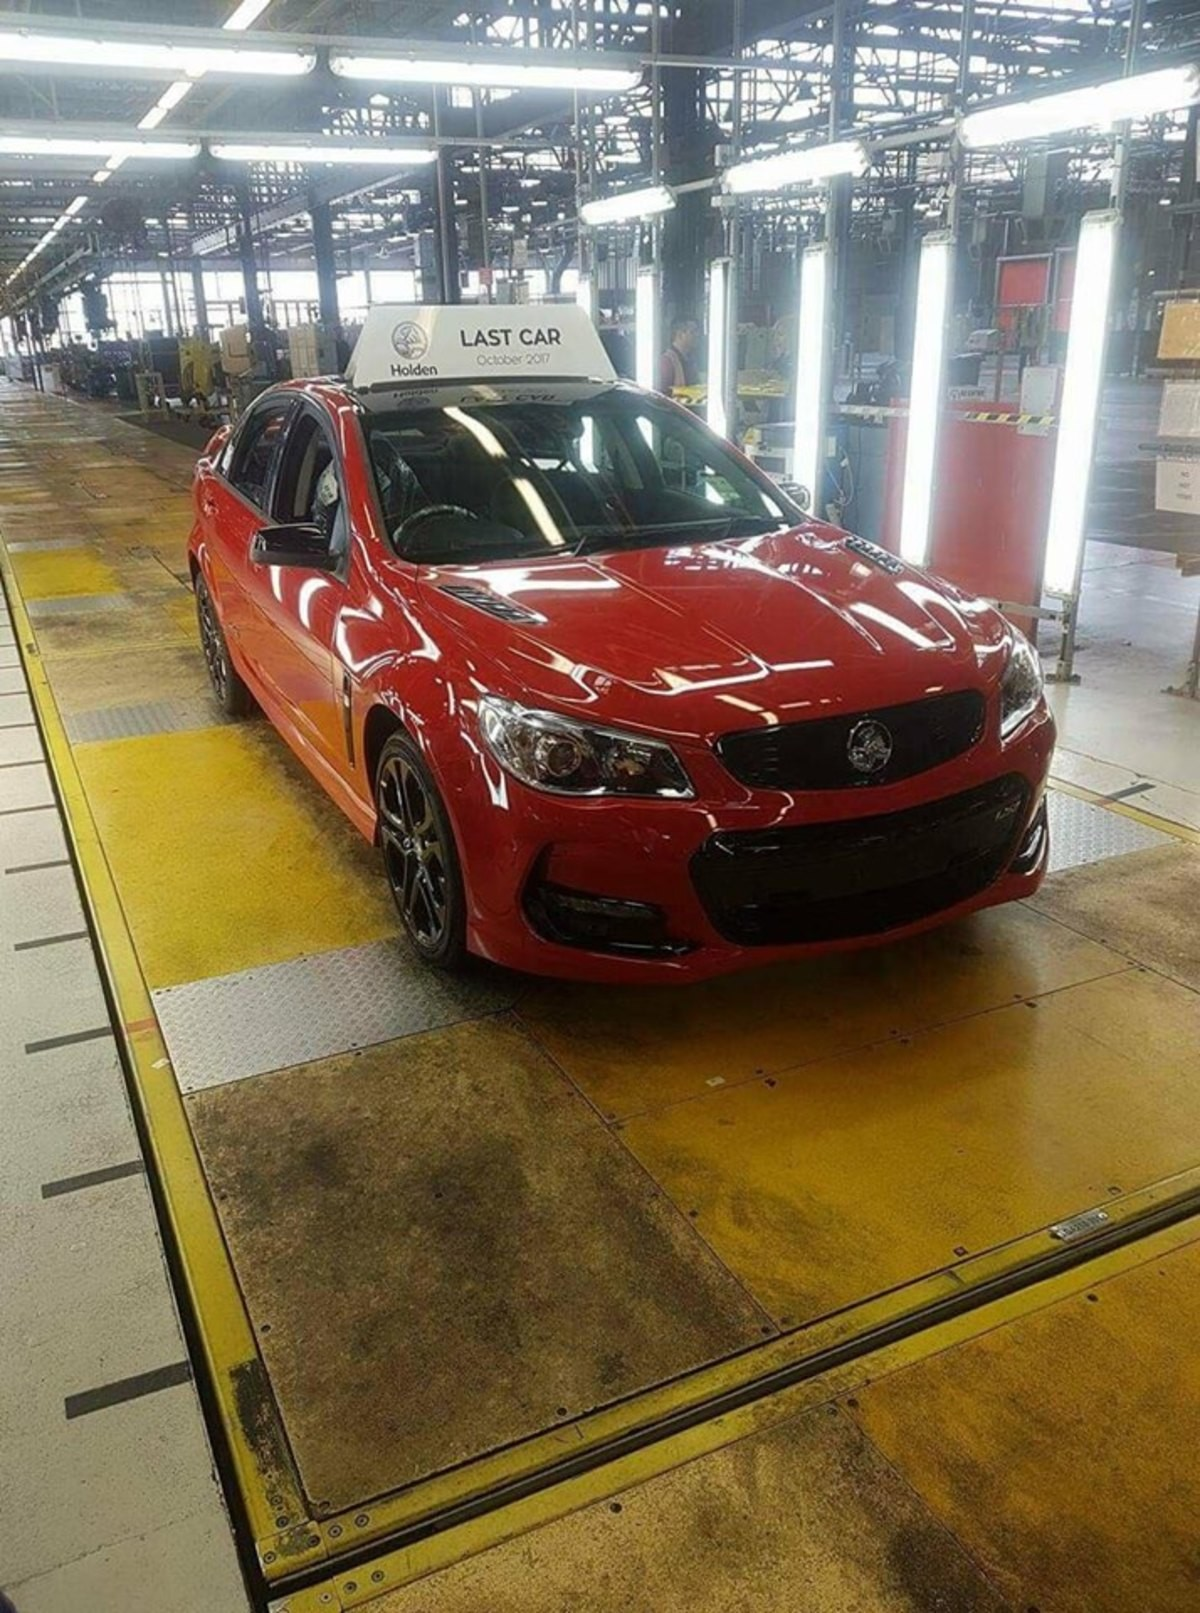 The last Aussie built Commodore. .. Good. The company's been mooching hundreds of millions off the government to keep operating but still couldn't make it work. People stopped buying large family